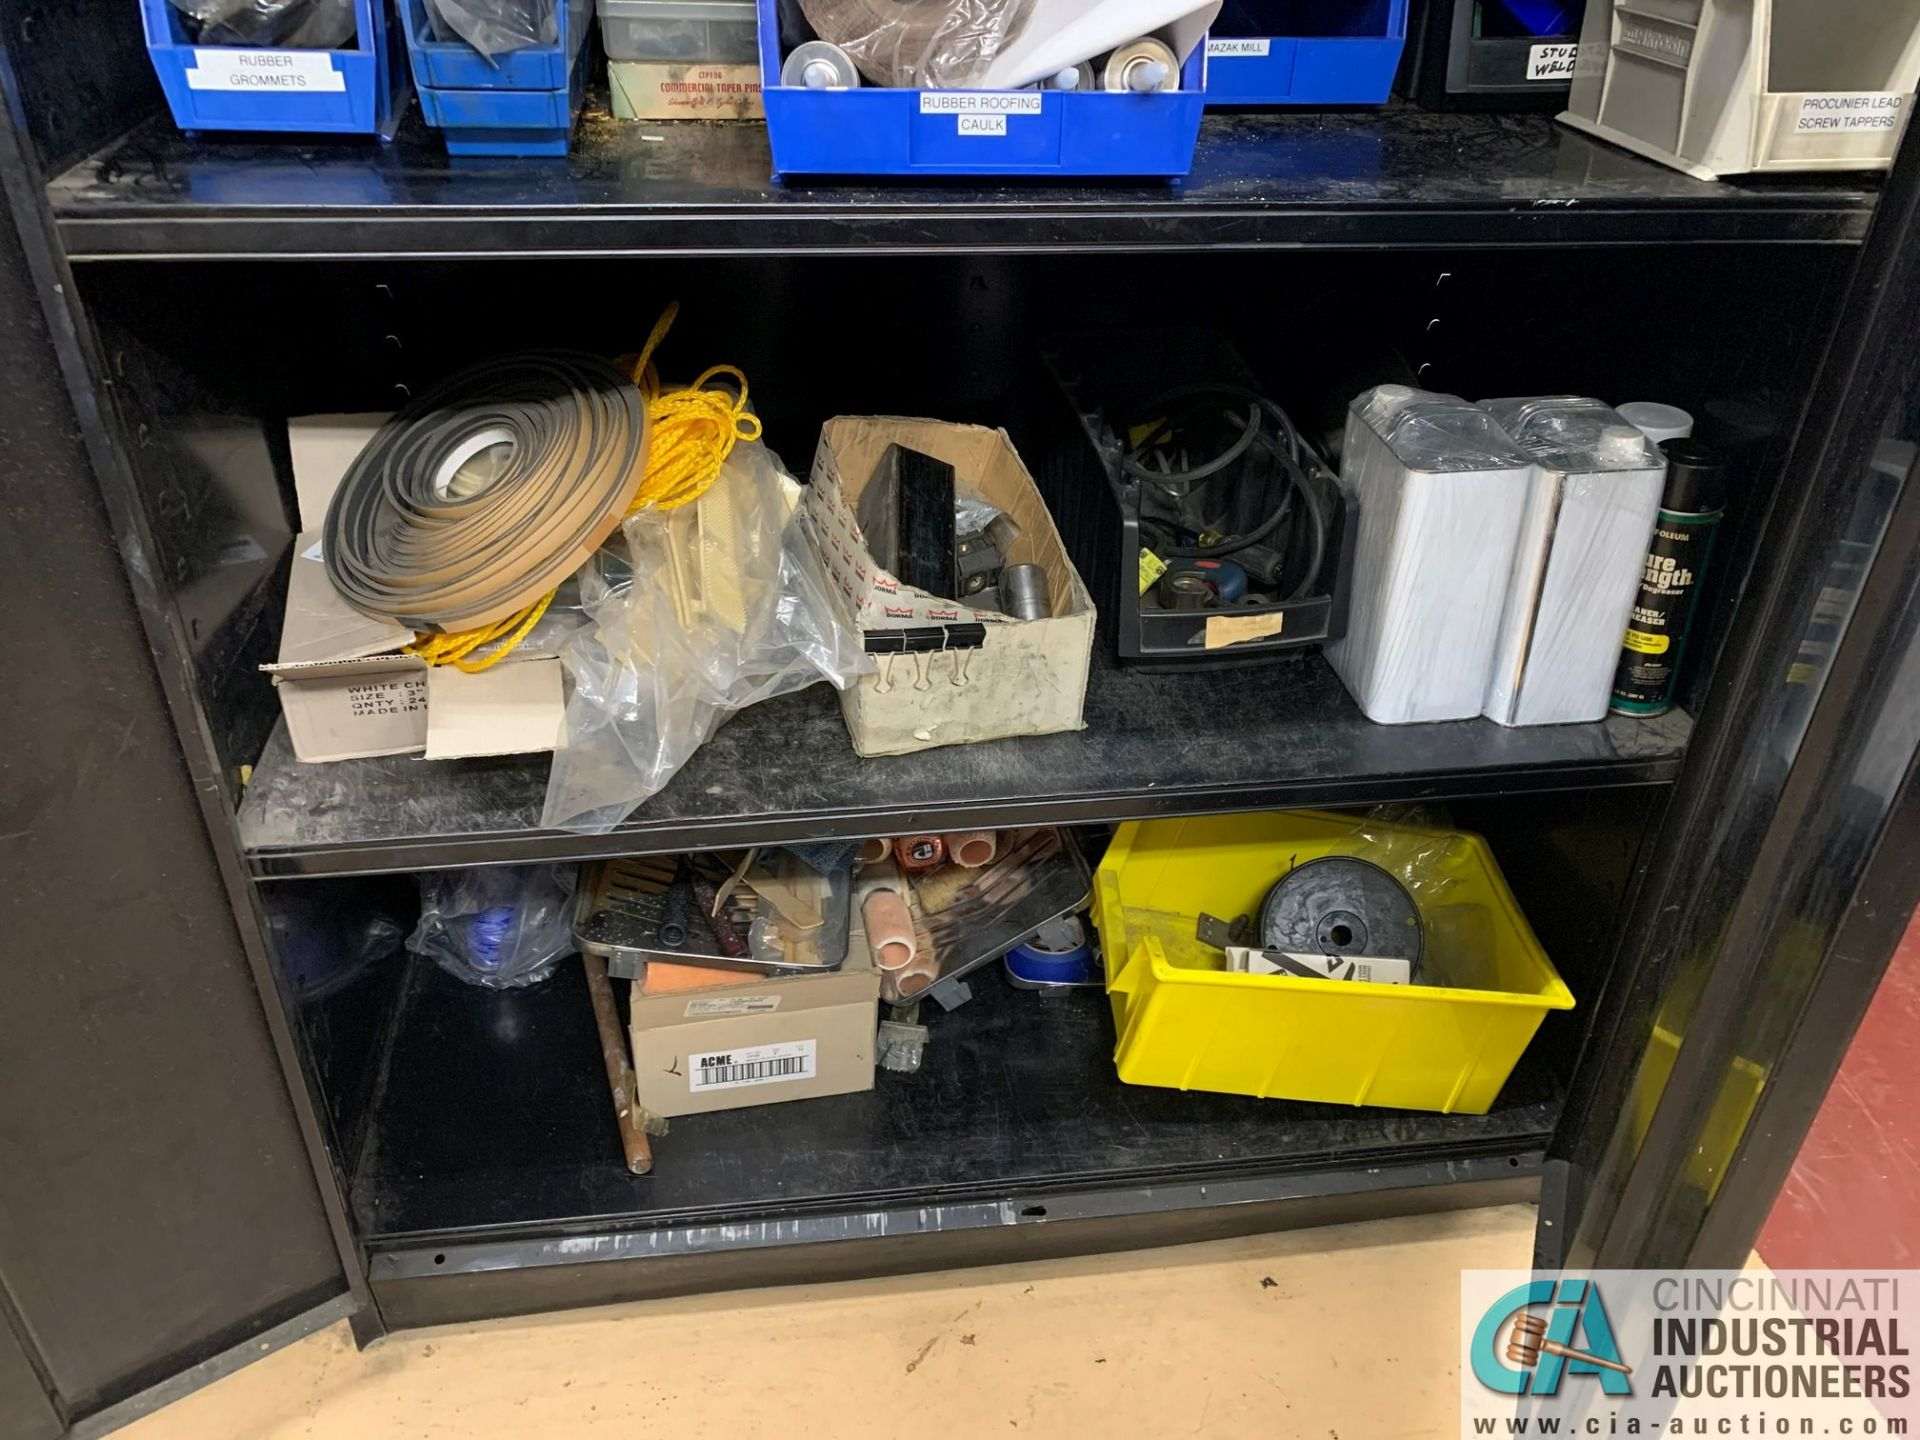 (LOT) (4) CABINETS WITH MAINTENANCE PARTS AND SUPPLIES, FUSES, WIRE, CONNECTORS AND RELATED - Image 13 of 13